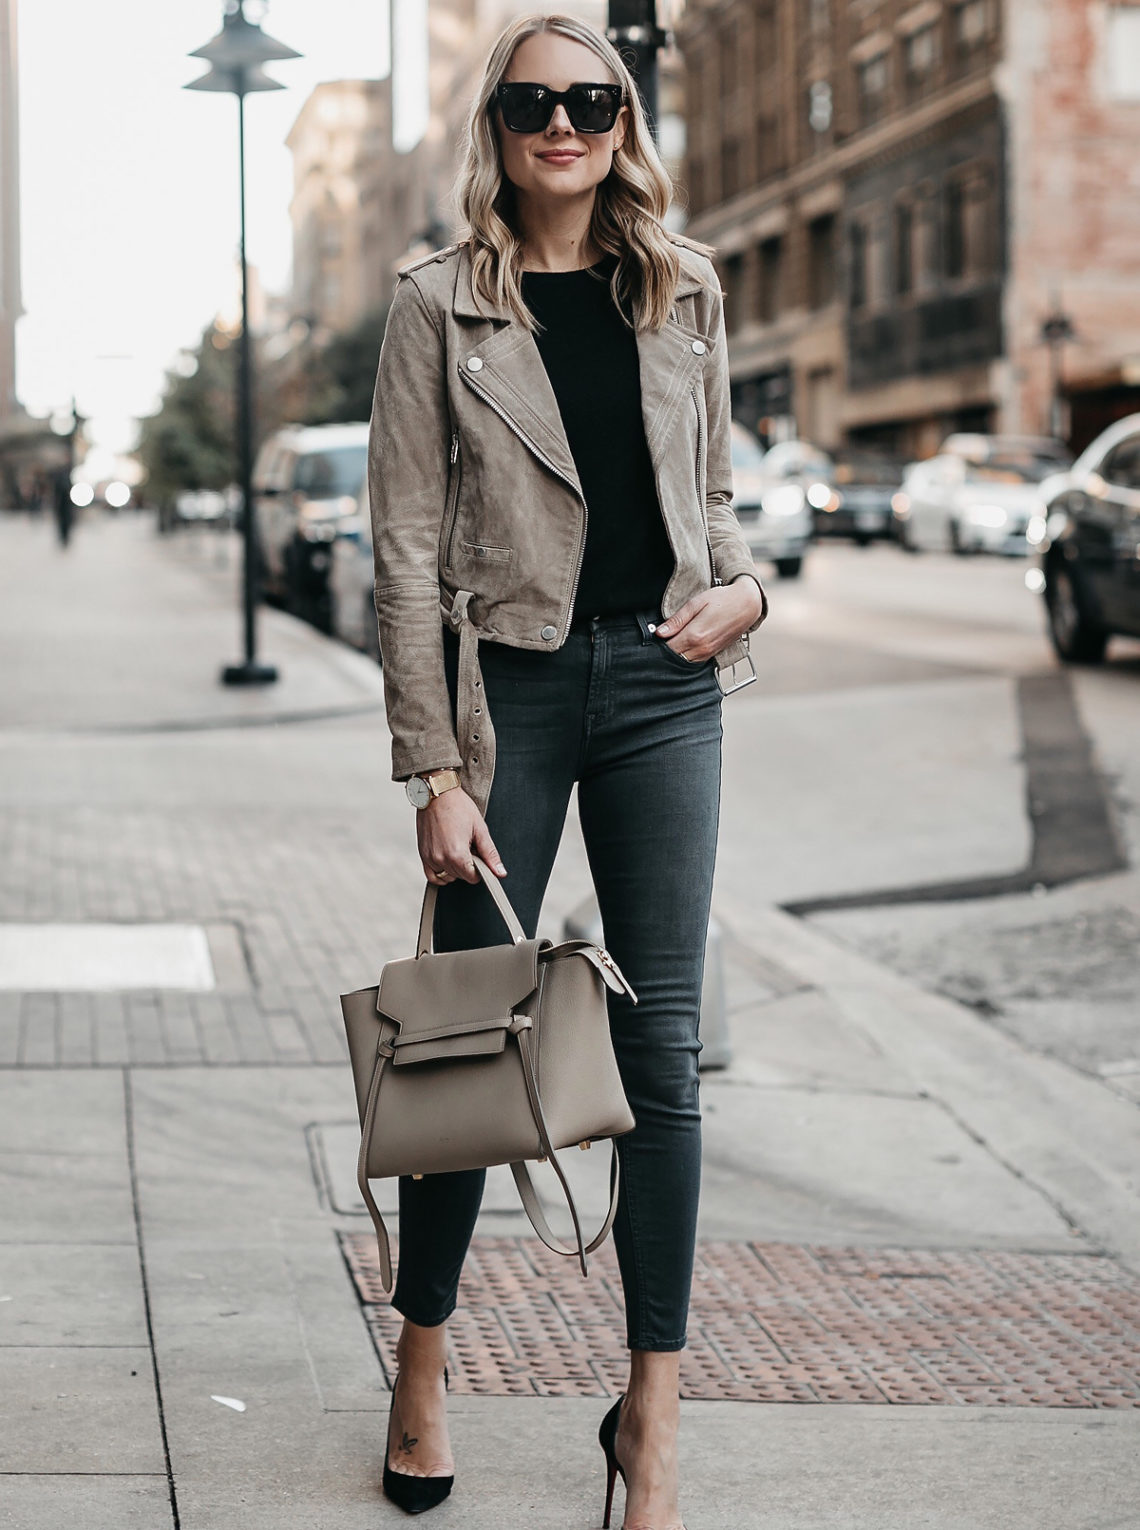 Blonde Woman Wearing Blanknyc Suede Moto Jacket Black Sweater 7 For All Mankind Grey Skinny Jeans Celine Mini Belt Bag Christian Louboutin Black Pumps Fashion Jackson Dallas Blogger Fashion Blogger Street Style